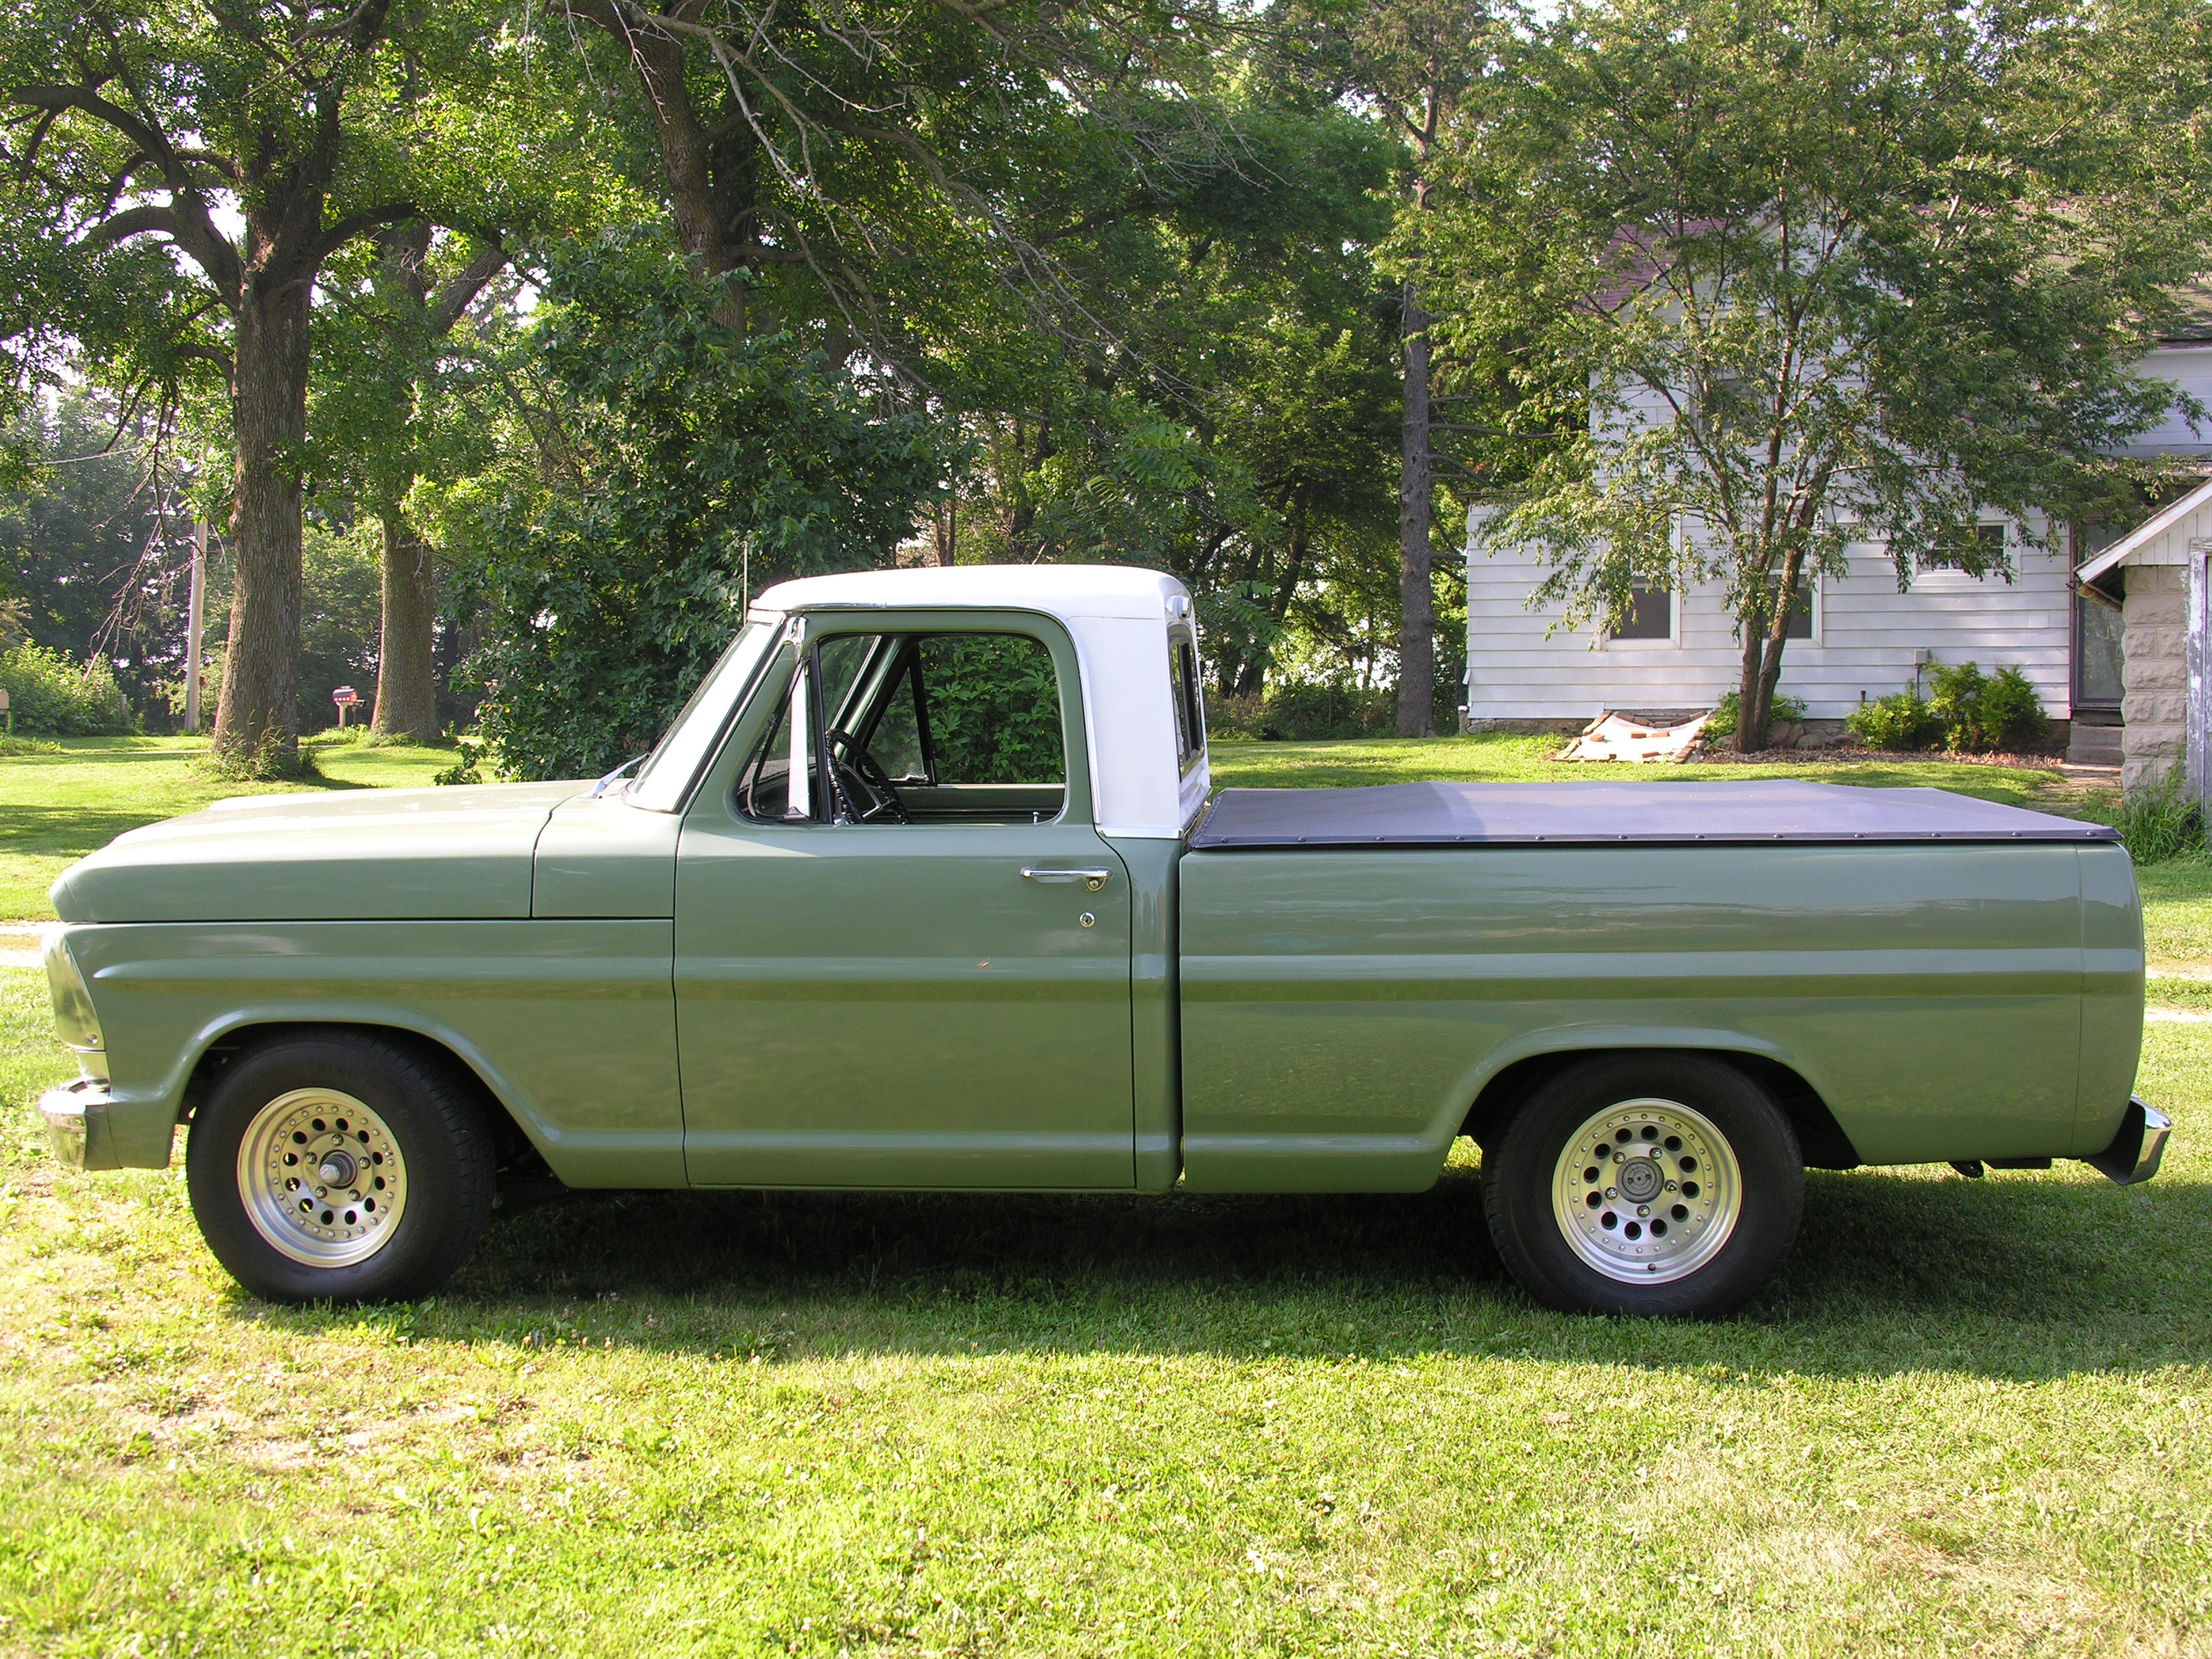 68 FORD Truck